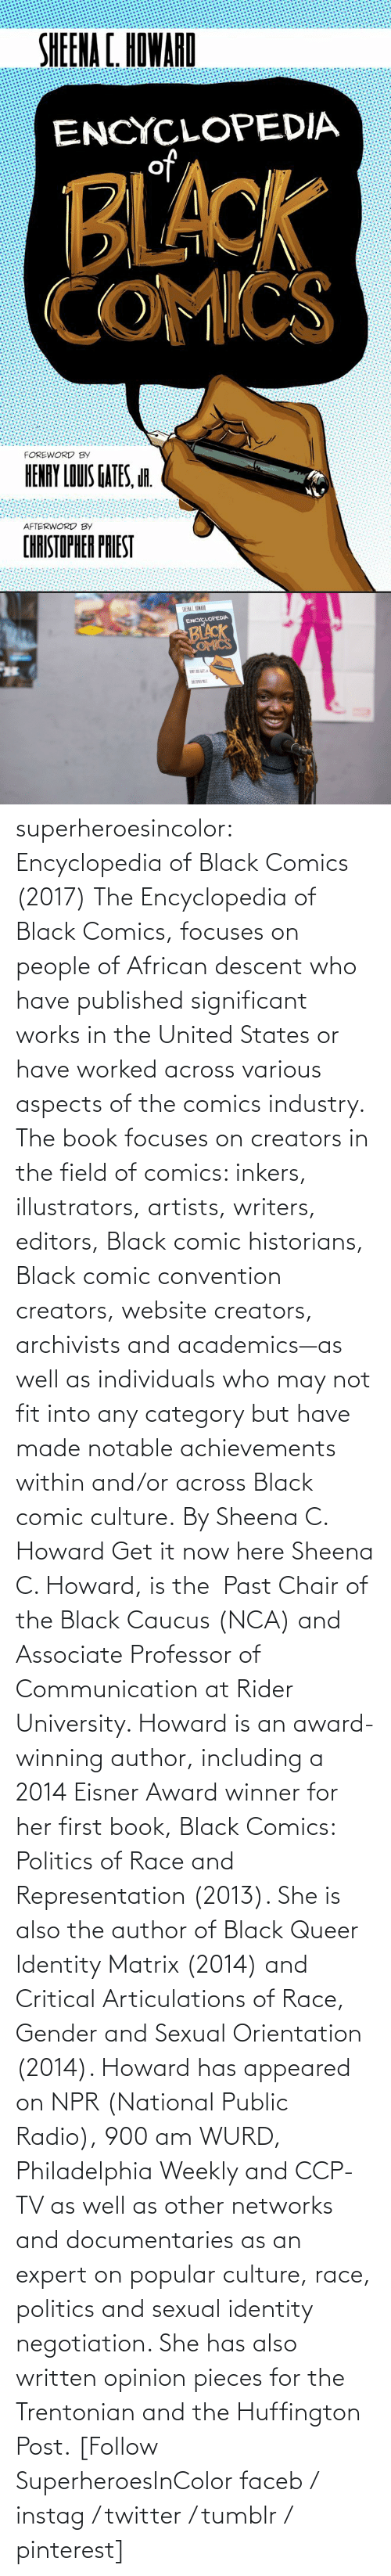 her: superheroesincolor: Encyclopedia of Black Comics (2017) The Encyclopedia of Black Comics, focuses on people of African descent who have published significant works in the United States or have worked across various aspects of the comics industry.  The book focuses on creators in the field of comics: inkers, illustrators, artists, writers, editors, Black comic historians, Black comic convention creators, website creators, archivists and academics—as well as individuals who may not fit into any category but have made notable achievements within and/or across Black comic culture. By Sheena C. Howard Get it now here  Sheena C. Howard, is the  Past Chair of the Black Caucus (NCA) and Associate Professor of Communication at Rider University. Howard is an award-winning author, including a 2014 Eisner Award winner for her first book, Black Comics: Politics of Race and Representation (2013). She is also the author of Black Queer Identity Matrix (2014) and Critical Articulations of Race, Gender and Sexual Orientation (2014). Howard has appeared on NPR (National Public Radio), 900 am WURD, Philadelphia Weekly and CCP-TV as well as other networks and documentaries as an expert on popular culture, race, politics and sexual identity negotiation. She has also written opinion pieces for the Trentonian and the Huffington Post.   [Follow SuperheroesInColor faceb / instag / twitter / tumblr / pinterest]